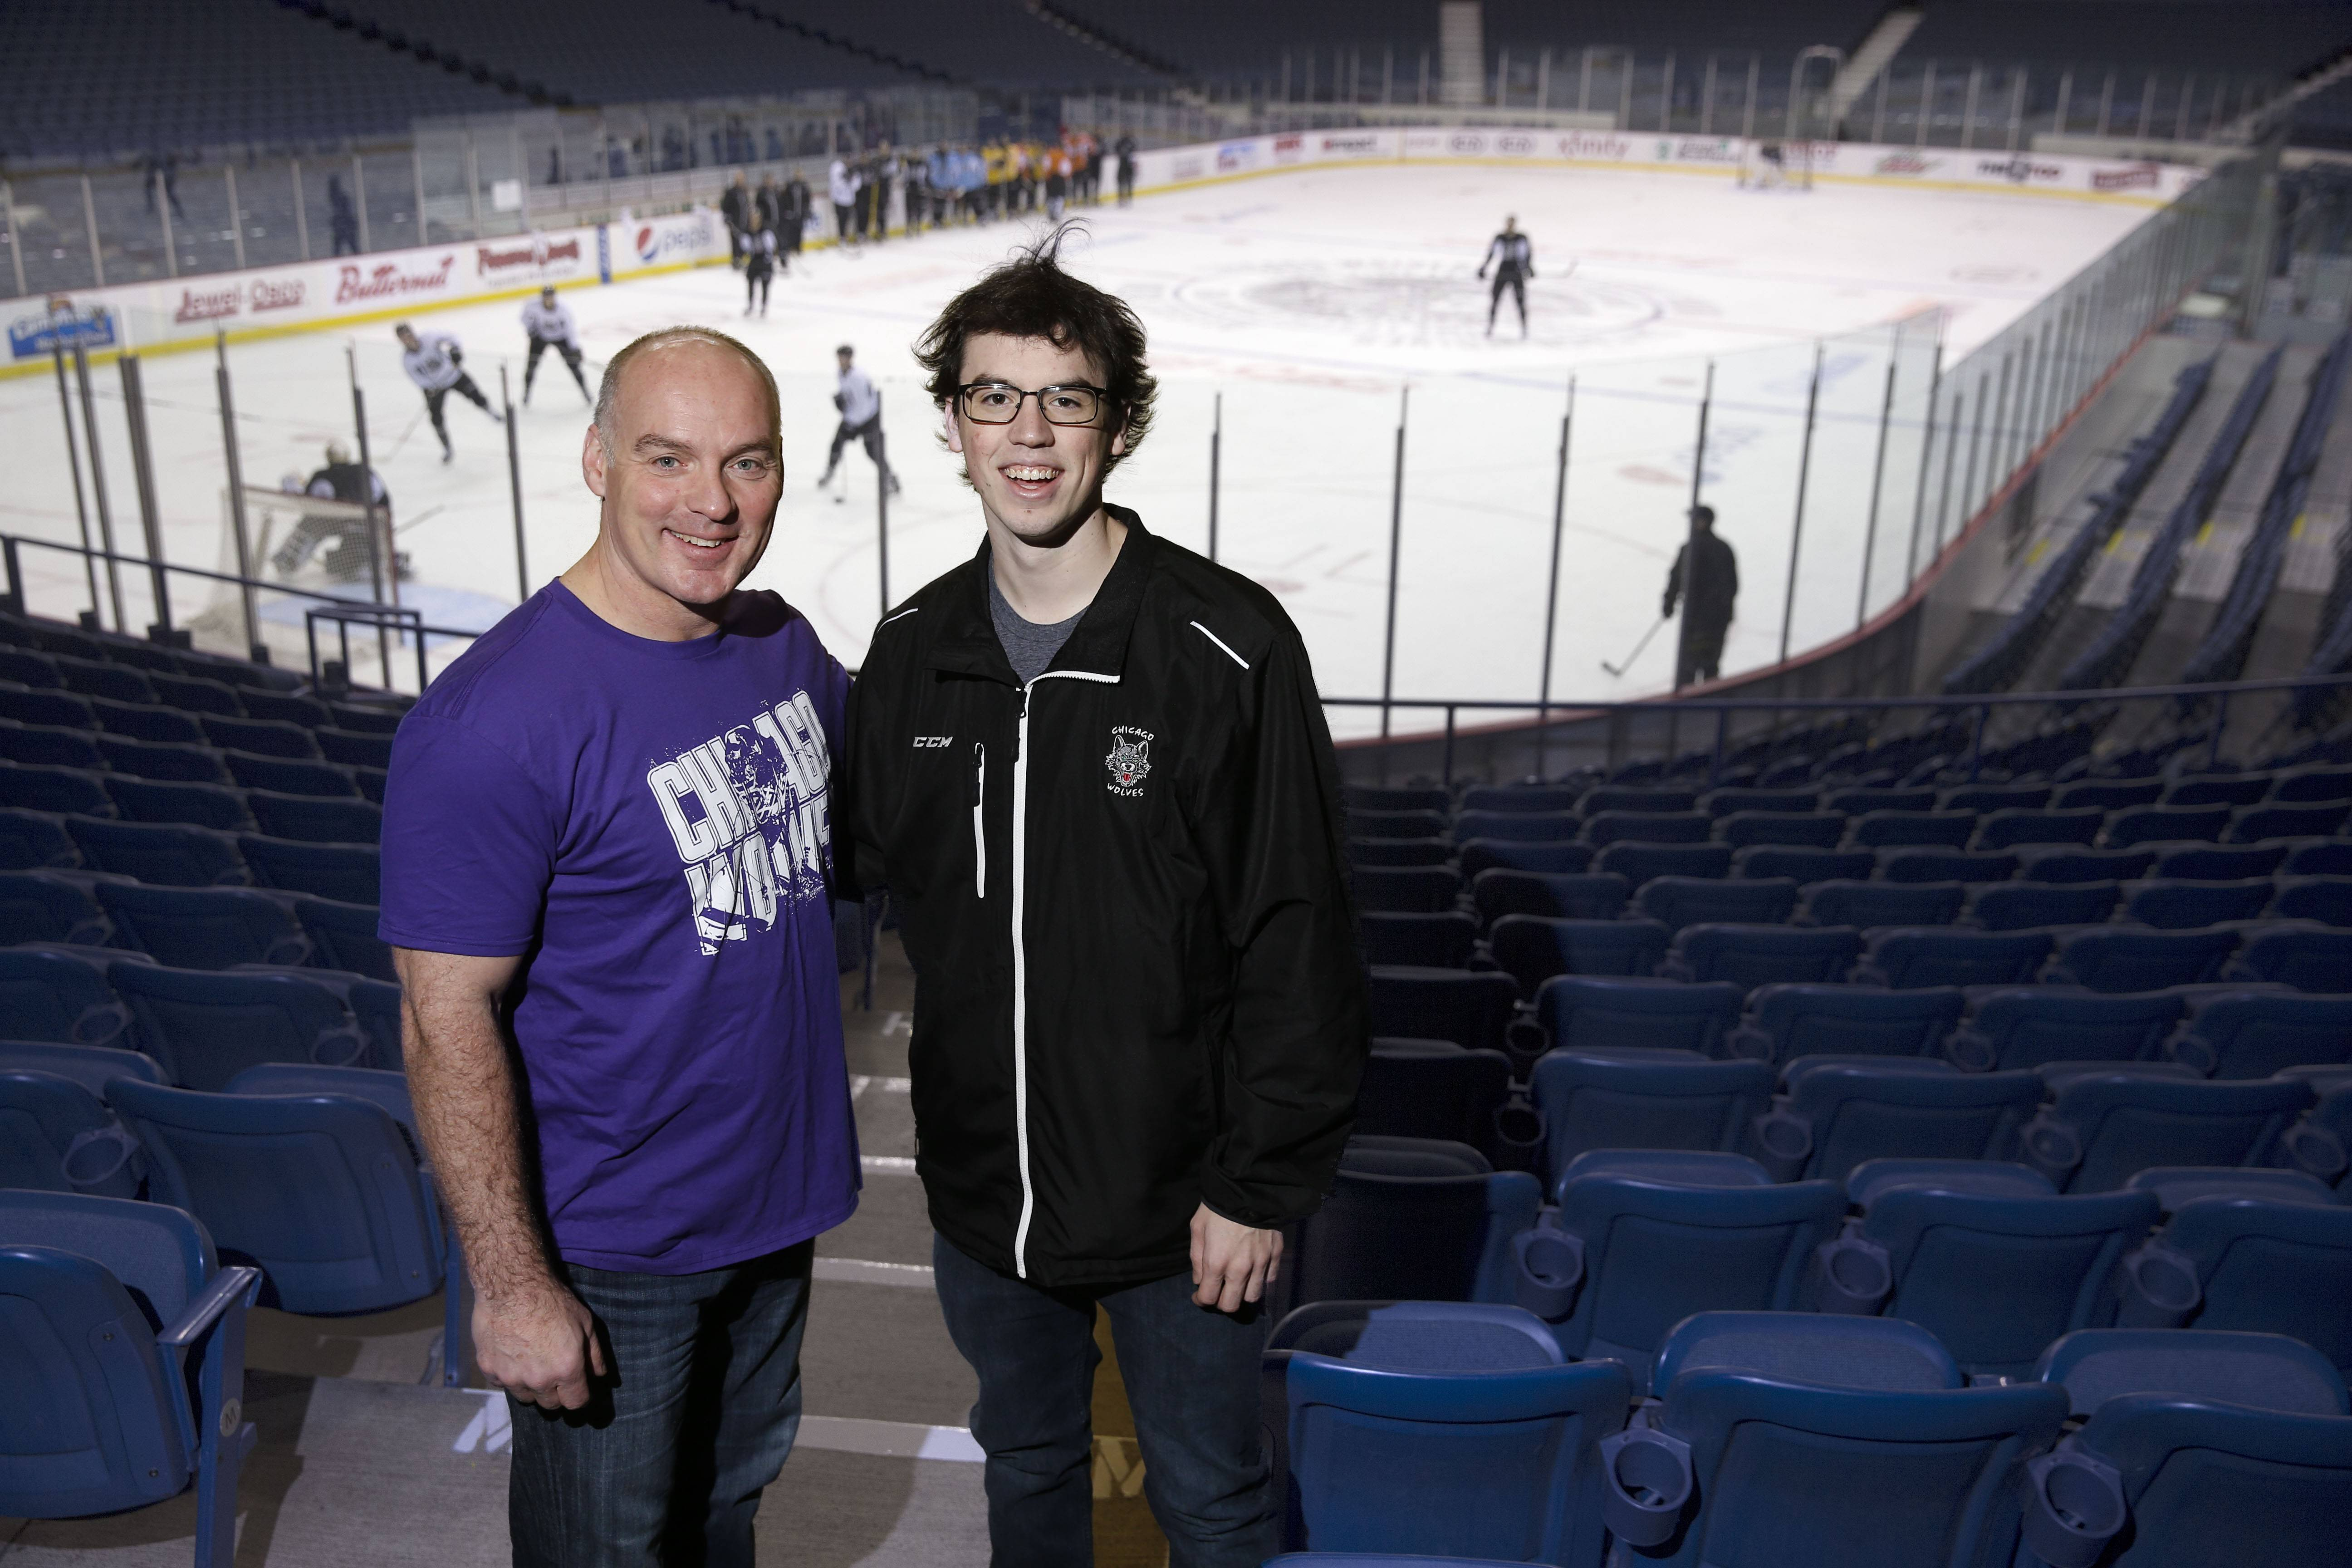 Wolves general manager Wendell Young, shown here with his son, Matthew, wears a commemorative T-shirt that will be given away to the first 2,500 fans at Saturday's game at Allstate Arena. It also will be sold to raise funds and awareness for the Epilepsy Foundation of Greater Chicago.